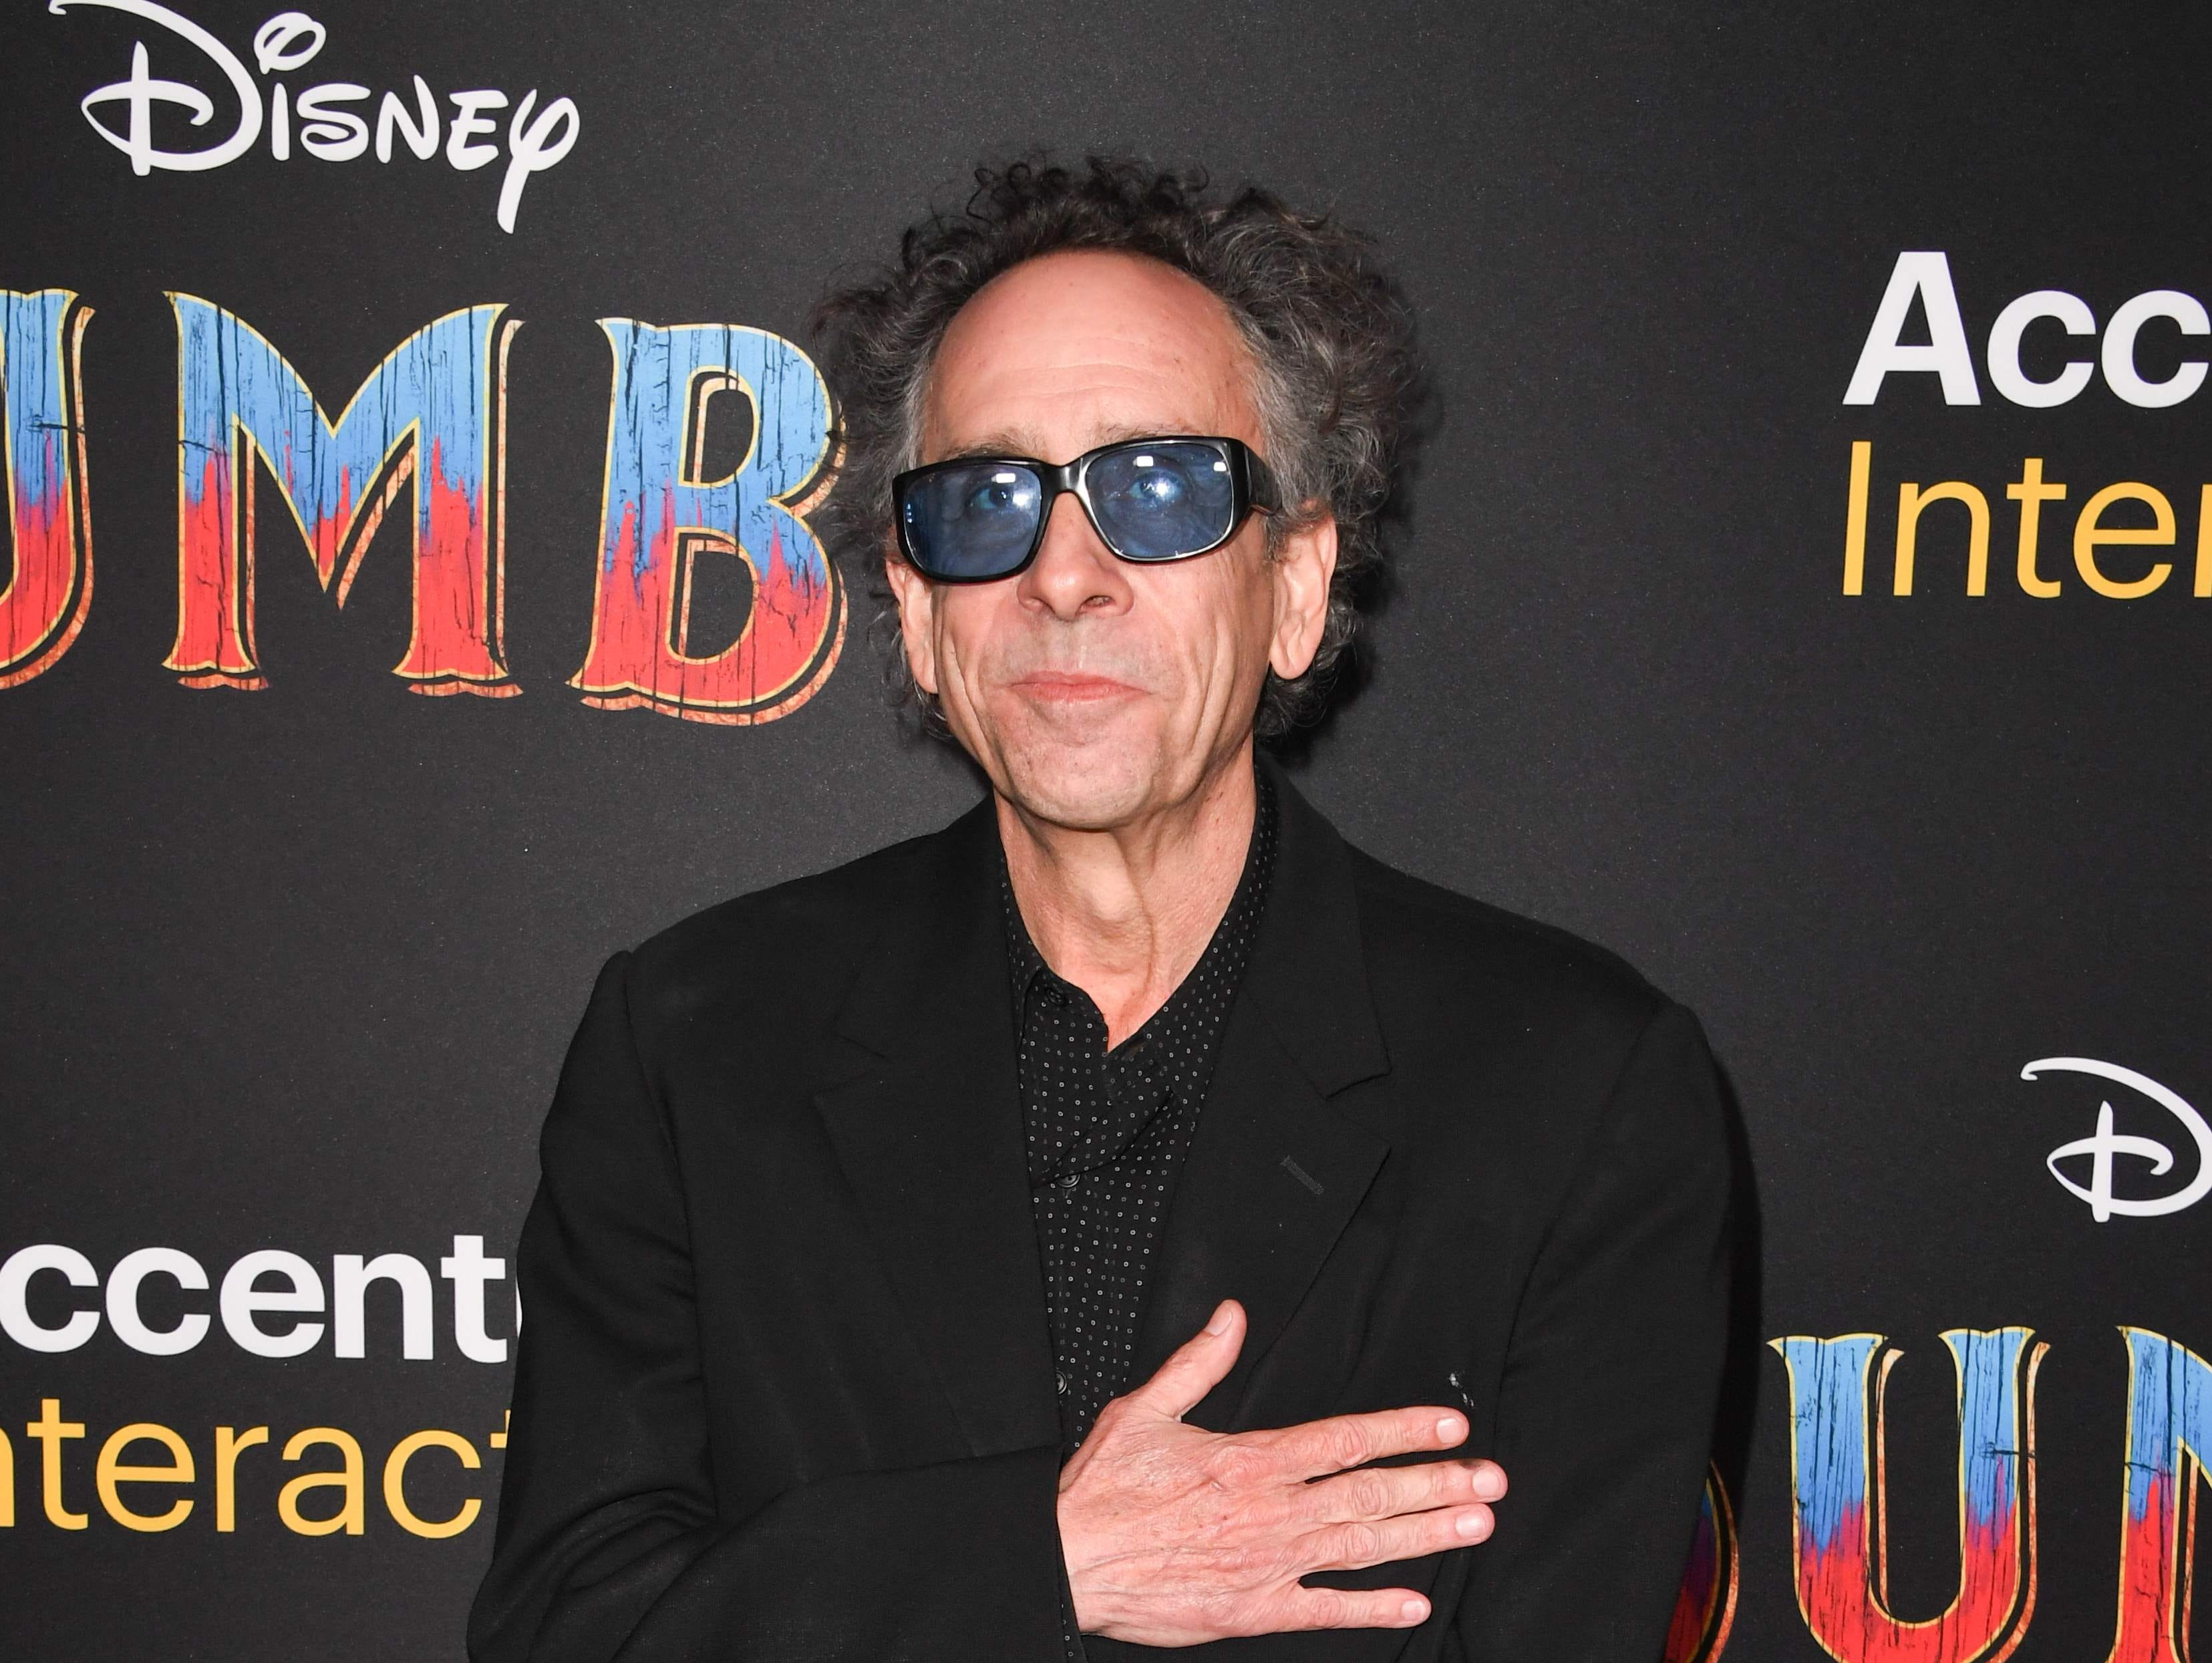 """US director Tim Burton arrives for the world premiere of Disney's """"Dumbo"""" at El Capitan theatre on March 11, 2019 in Hollywood. (Photo by Robyn Beck / AFP)ROBYN BECK/AFP/Getty Images ORG XMIT: Premiere ORIG FILE ID: AFP_1EI14P"""